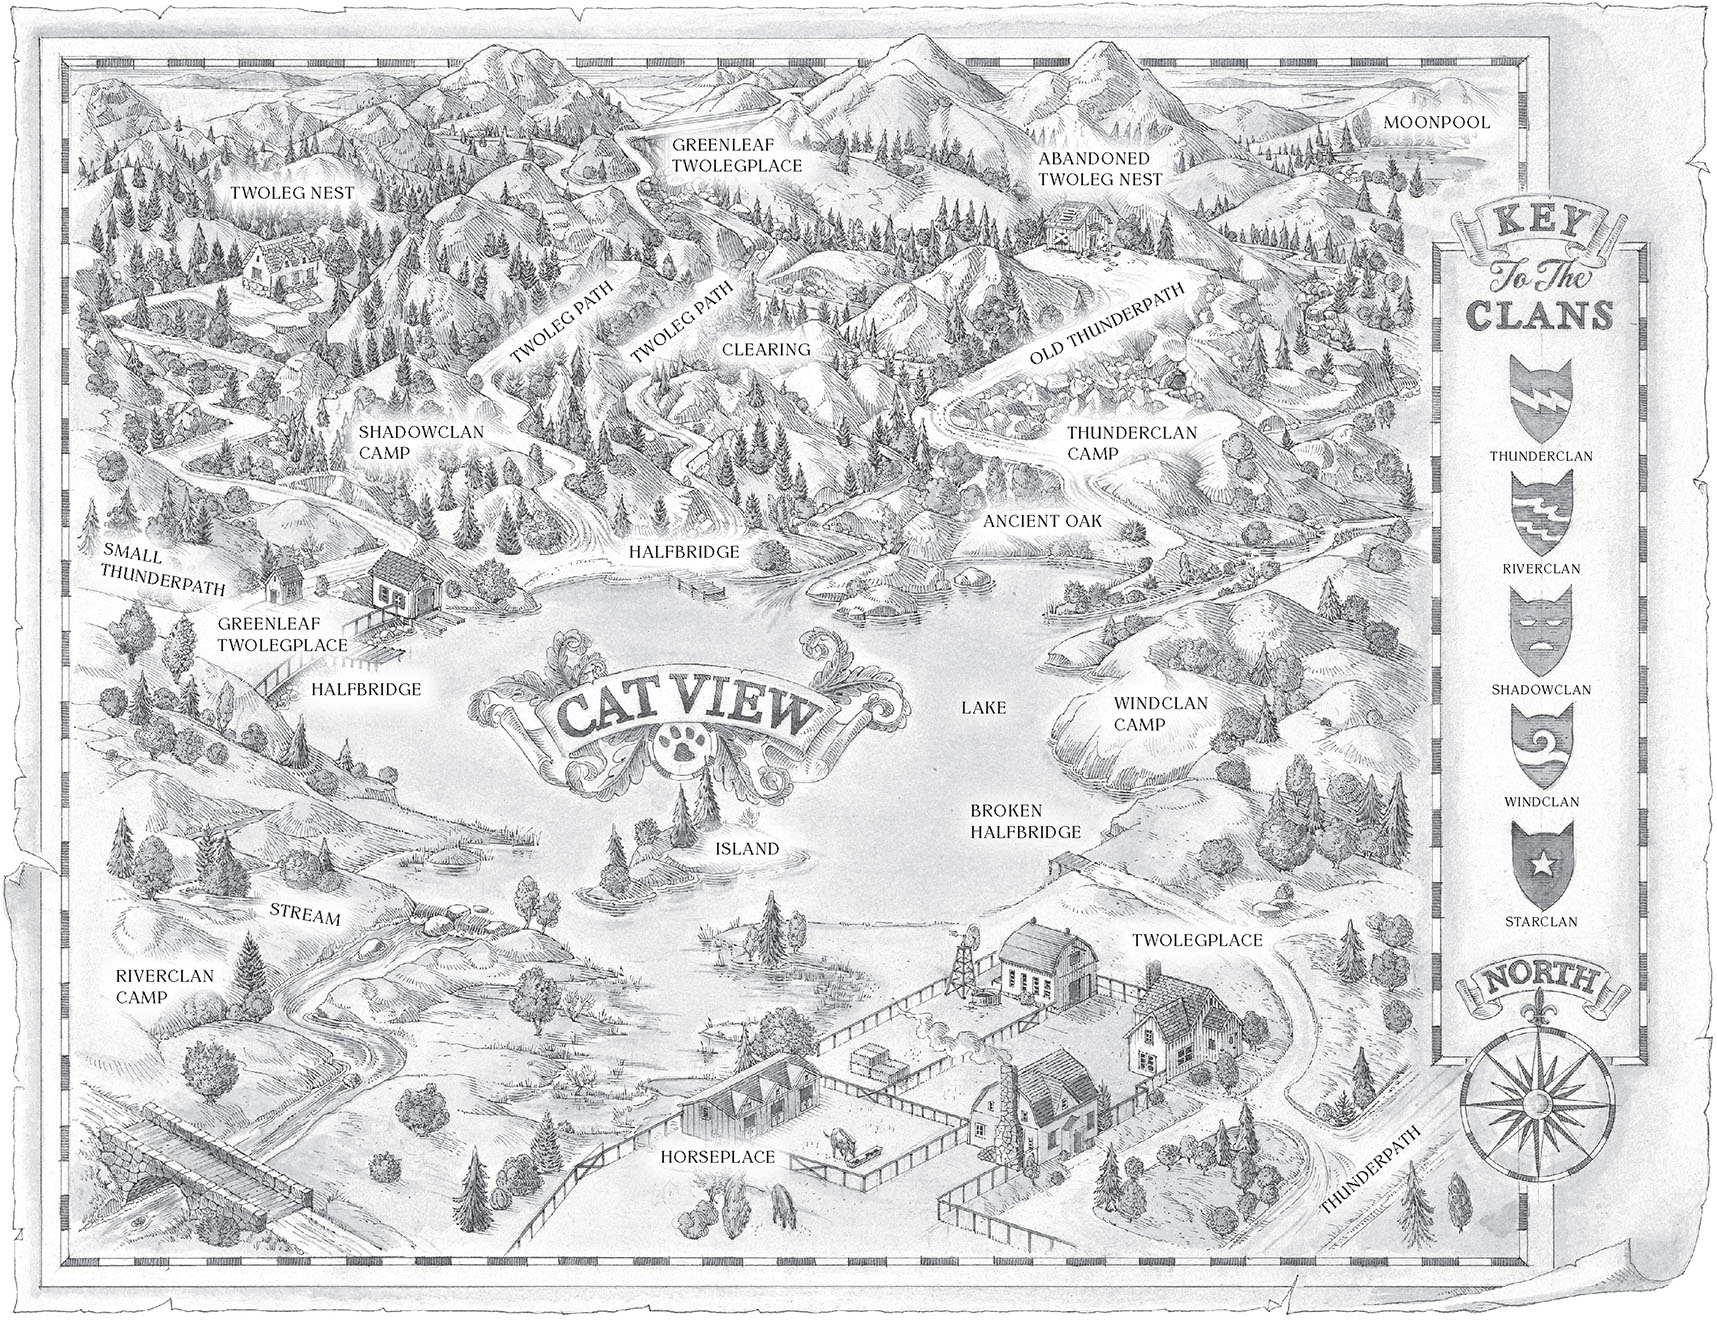 The Official Map For The Lake Territories, As Seen In The Reprinted Books